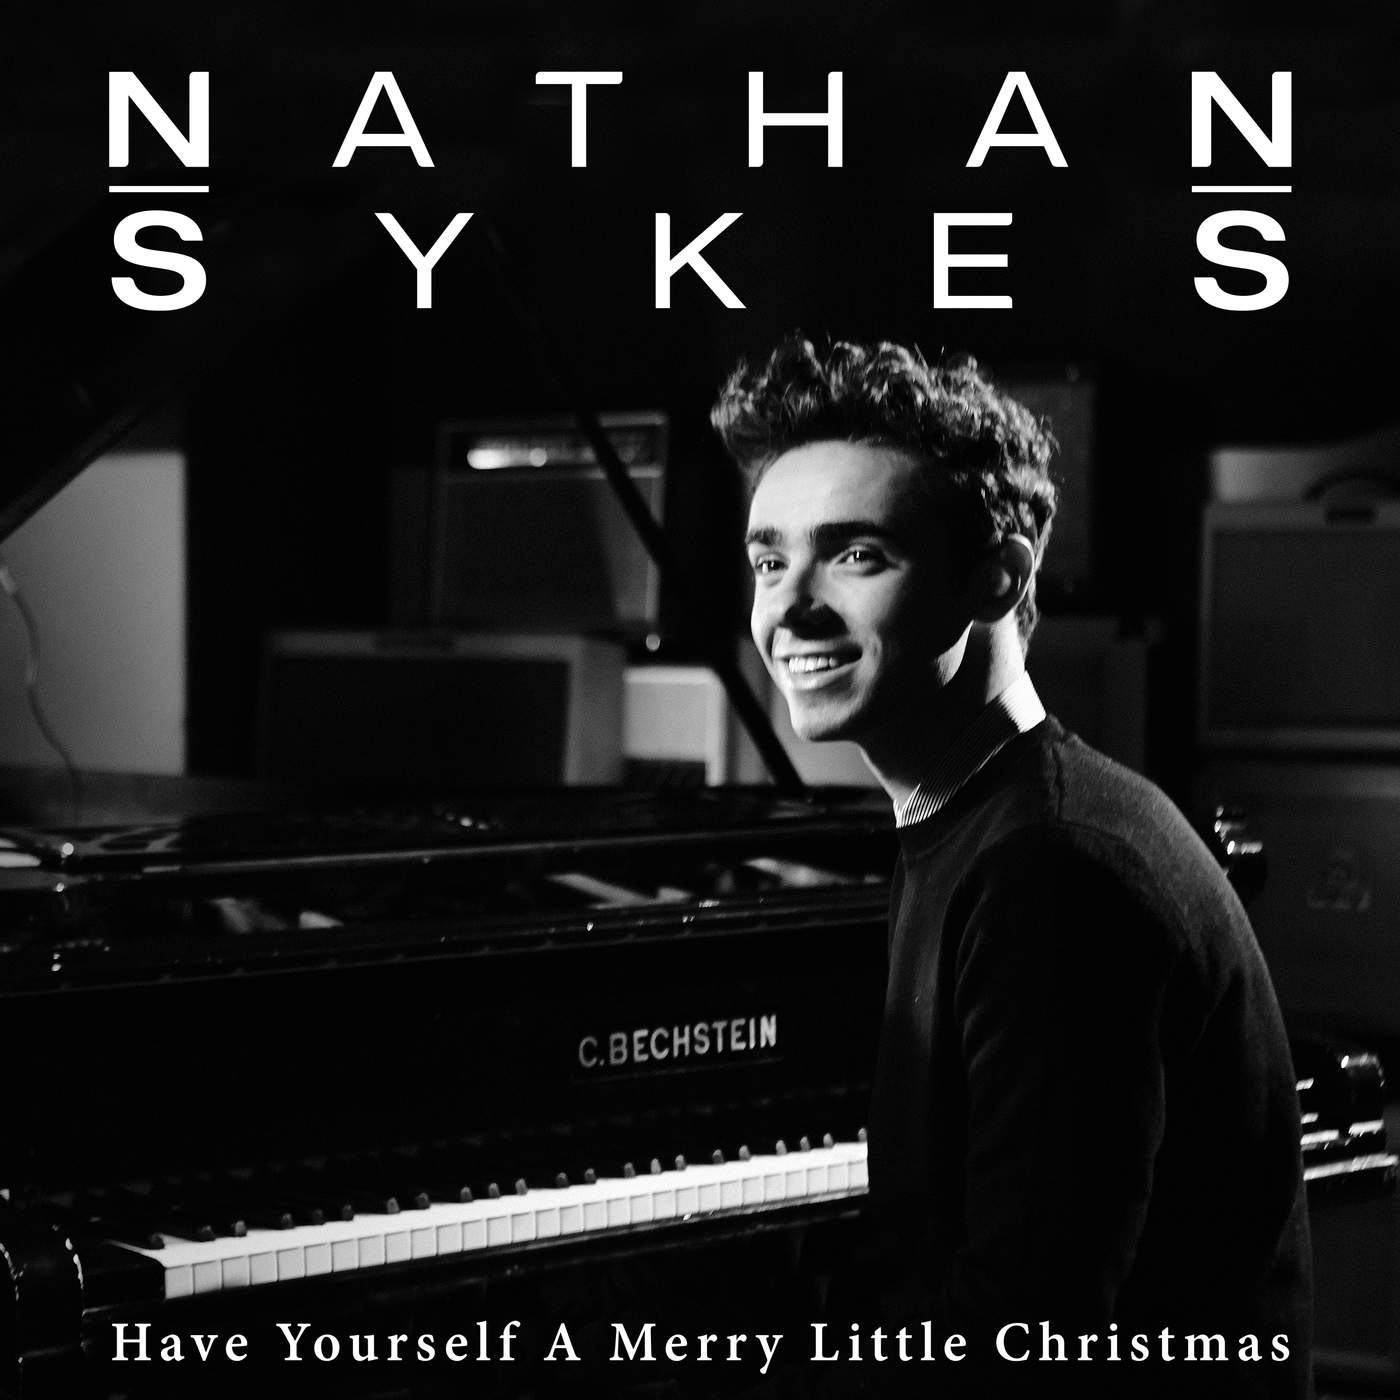 Nathan Sykes - Have Yourself a Merry Little Christmas - Single